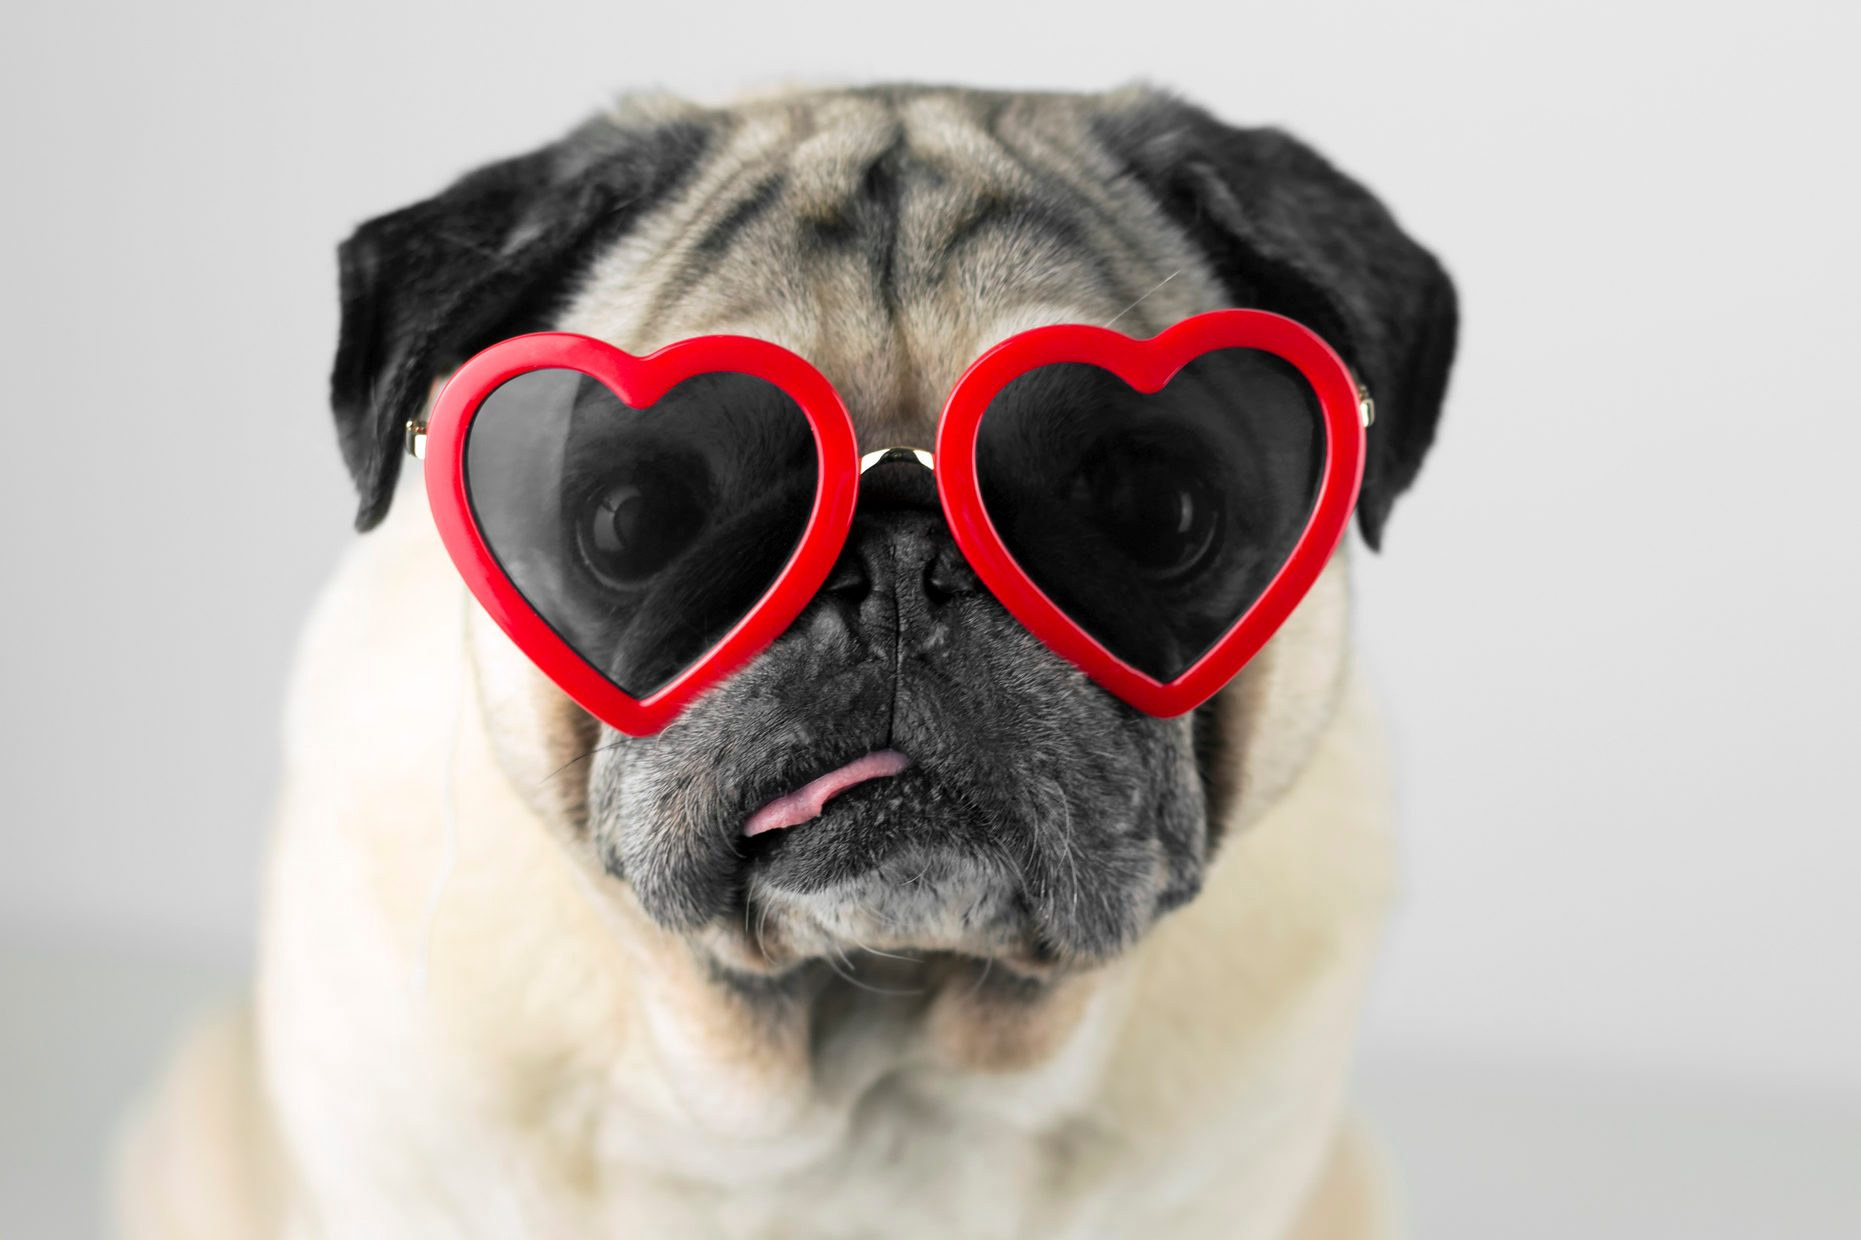 Dog with glasses of red heart